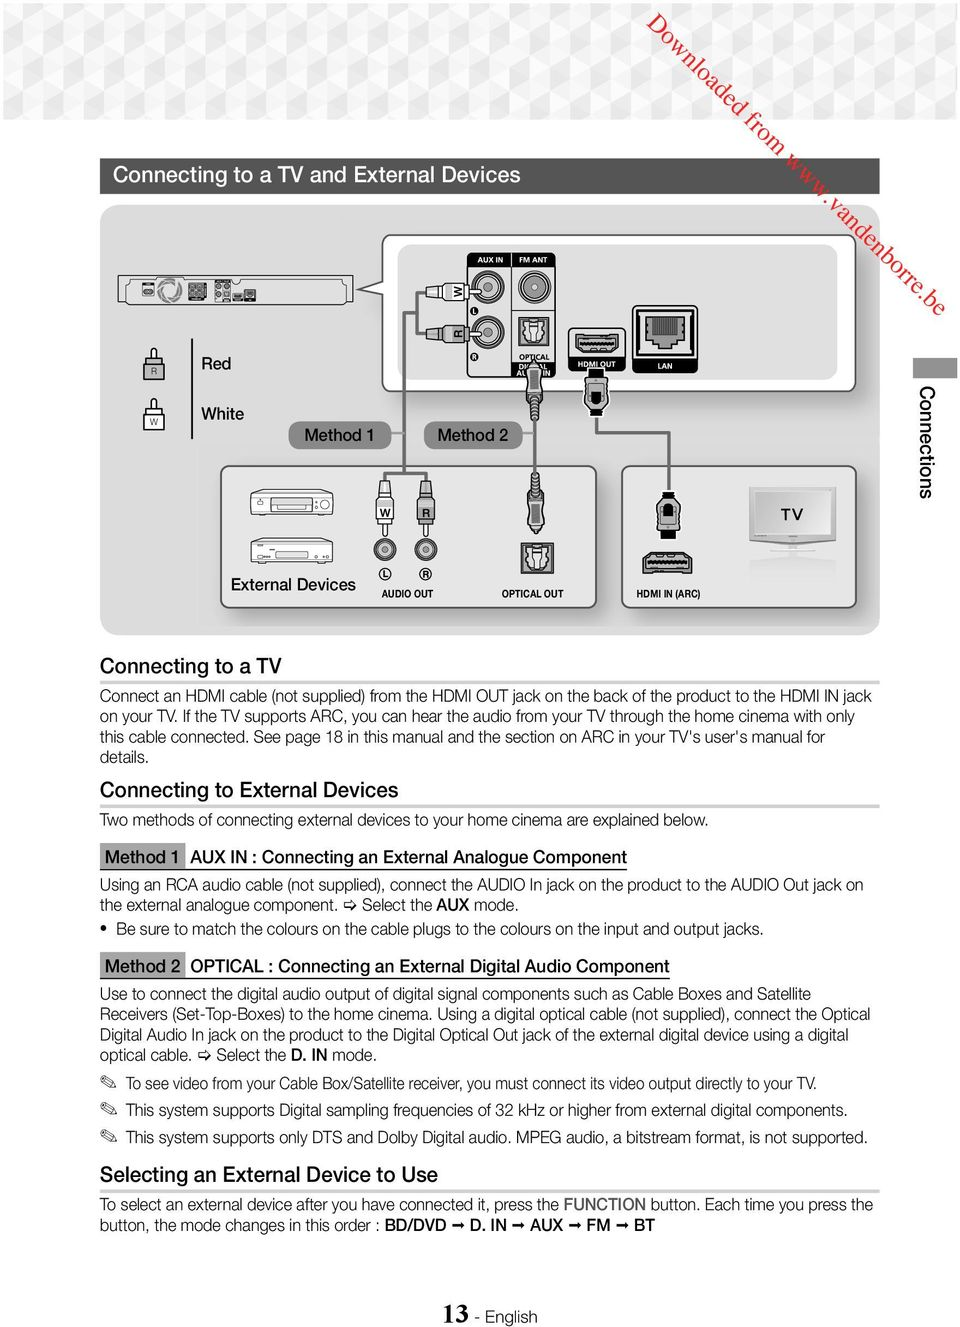 See page 18 in this manual and the section on ARC in your TV's user's manual for details.